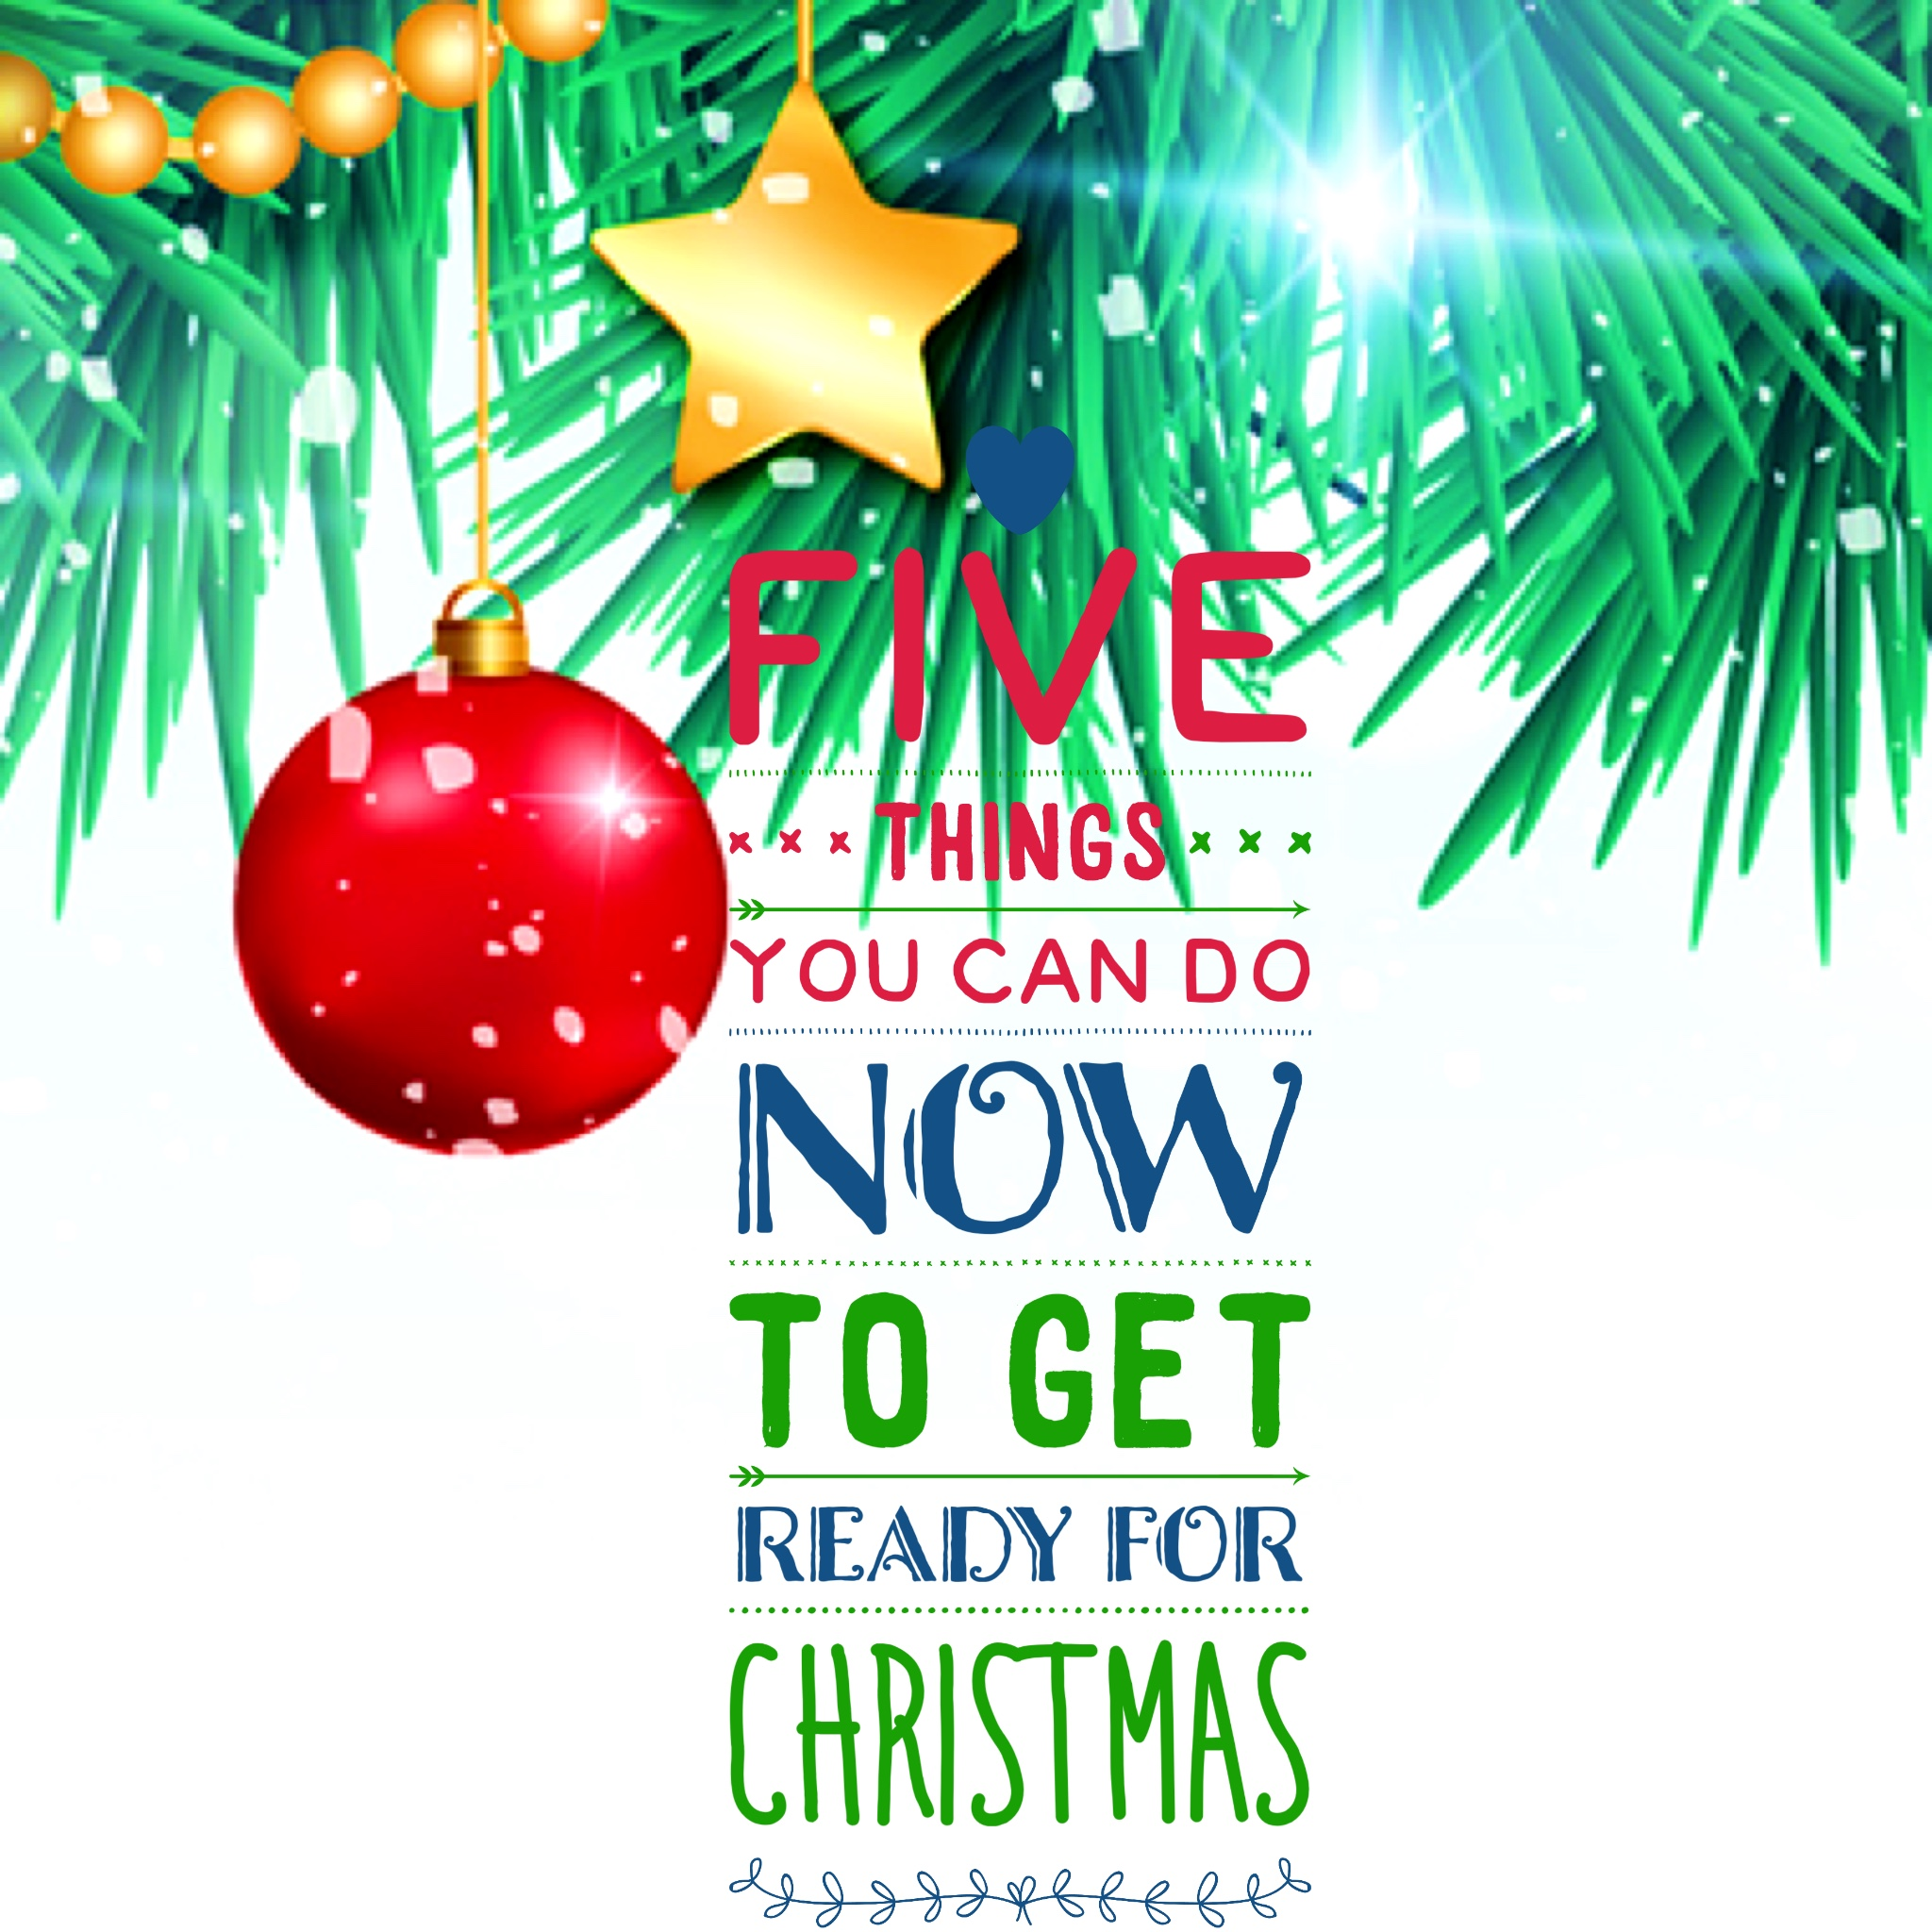 5 Things You Can Do Now to Get Ready for Christmas